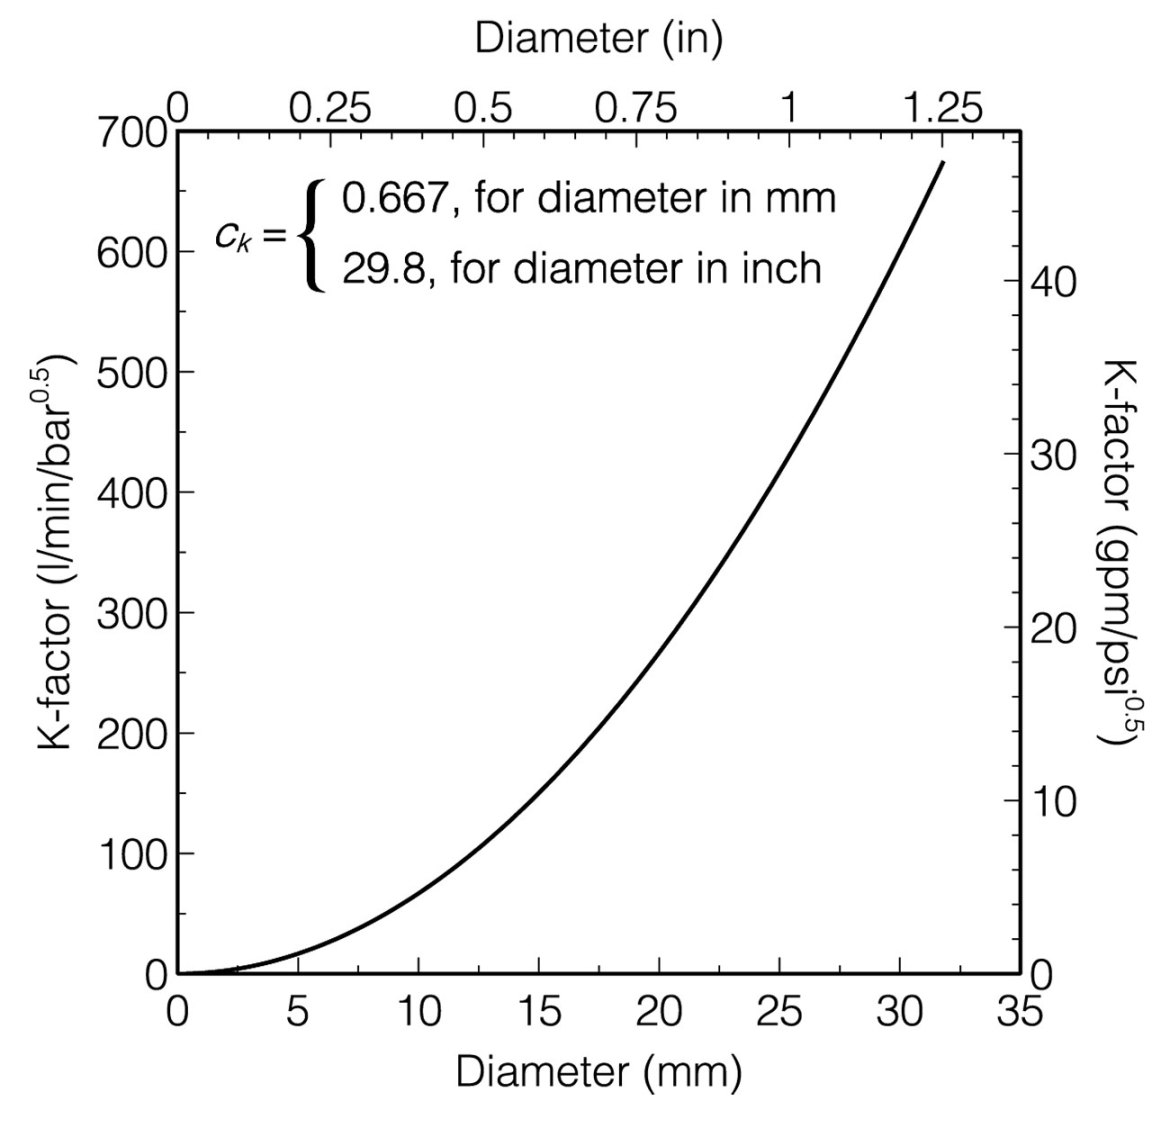 Figure 3. K-factor values as a function of exit diameter